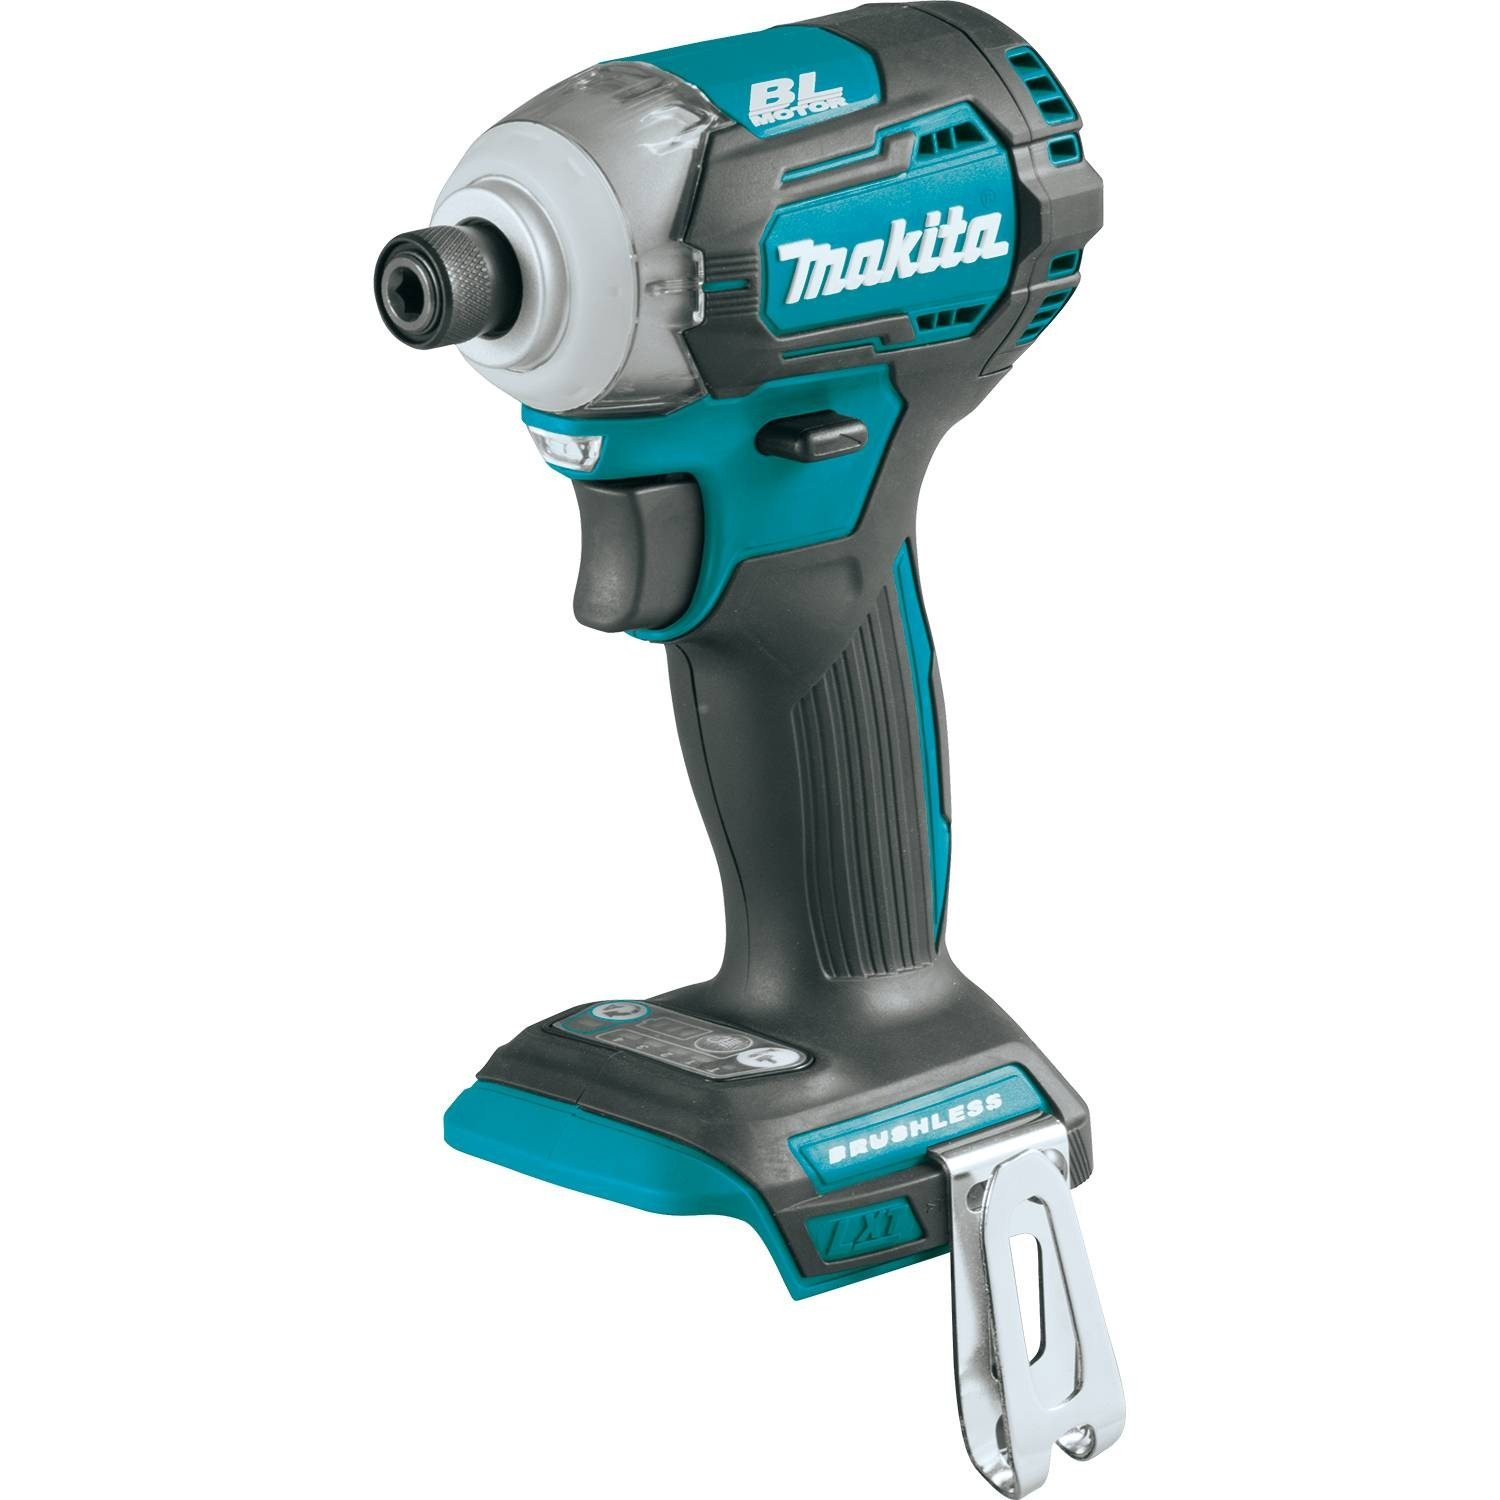 Makita XDT12Z 18V LXT Lithium-Ion Brushless Cordless Quick-Shift Mode 4-Speed Impact Driver, Tool Only,